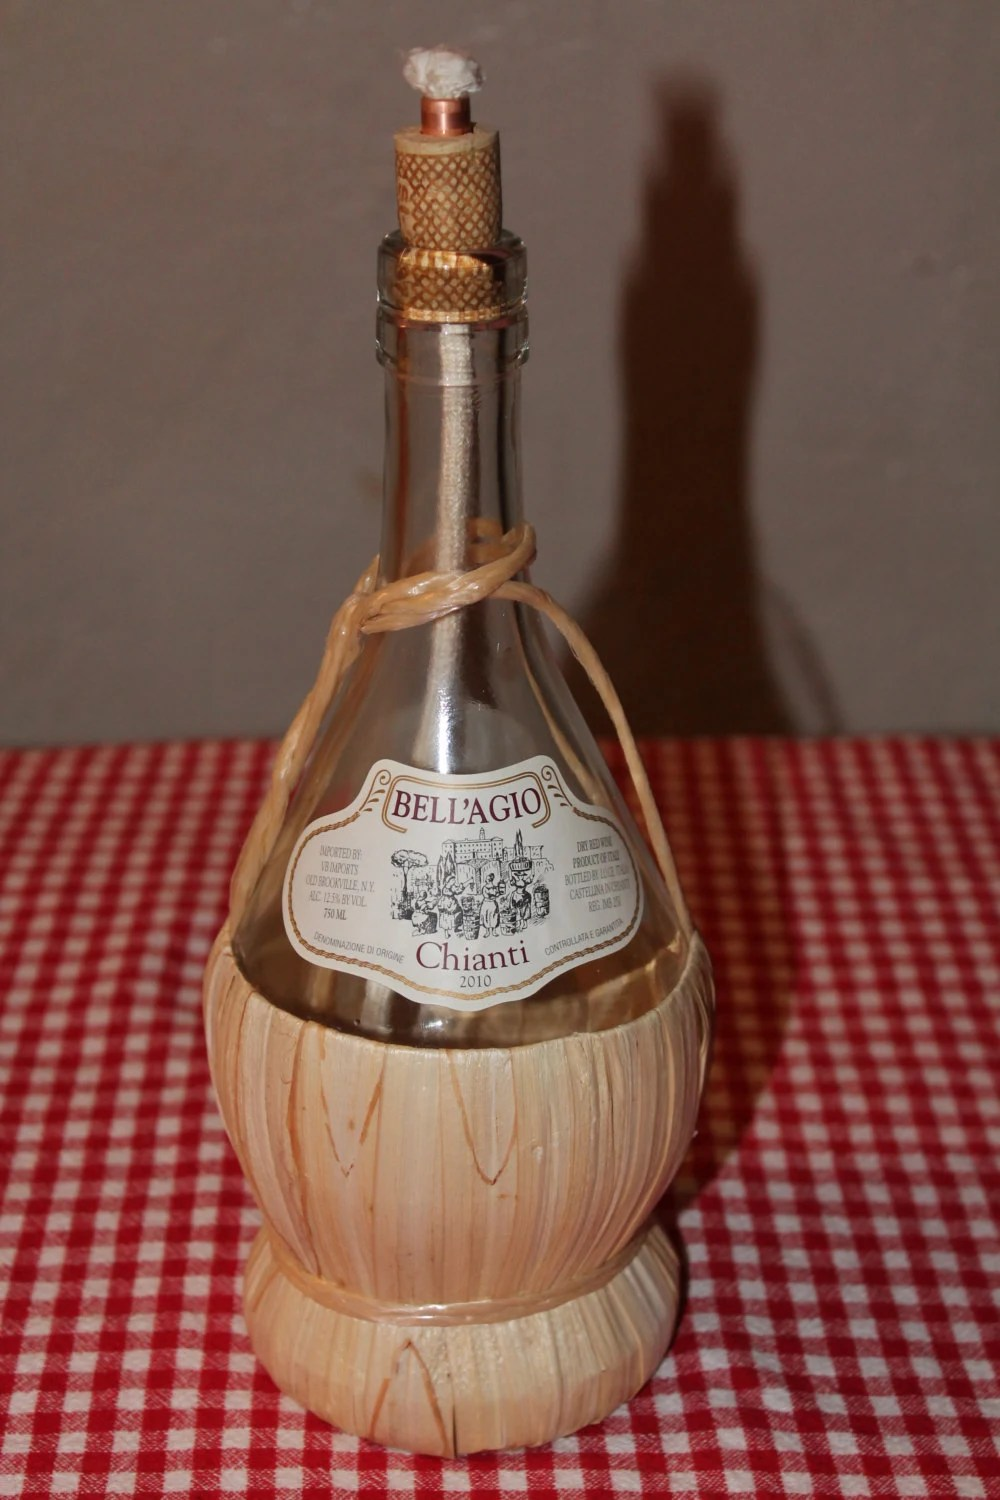 Oil lamp made from a Chianti wine bottle.